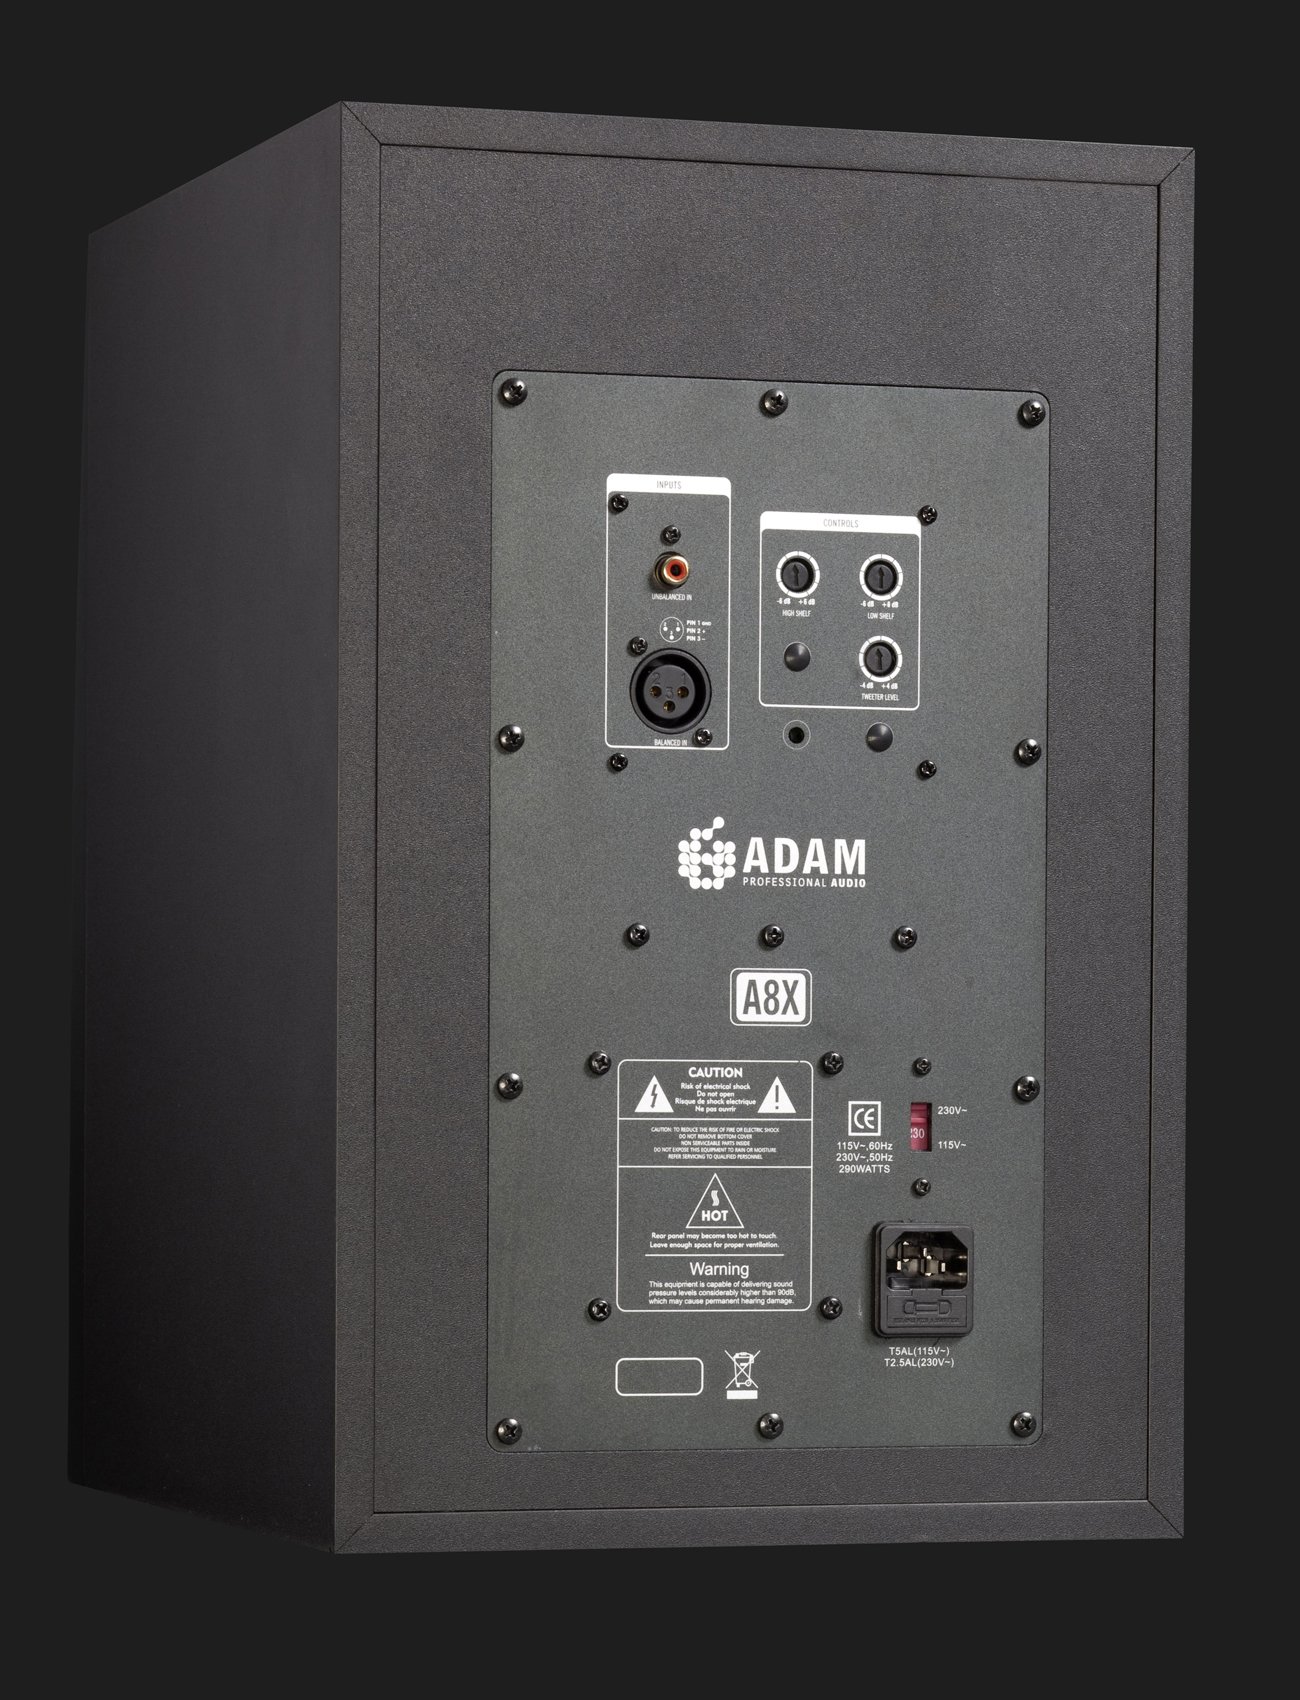 adam-audio-a8x-nearfield-monitor-backside-480x628.jpg